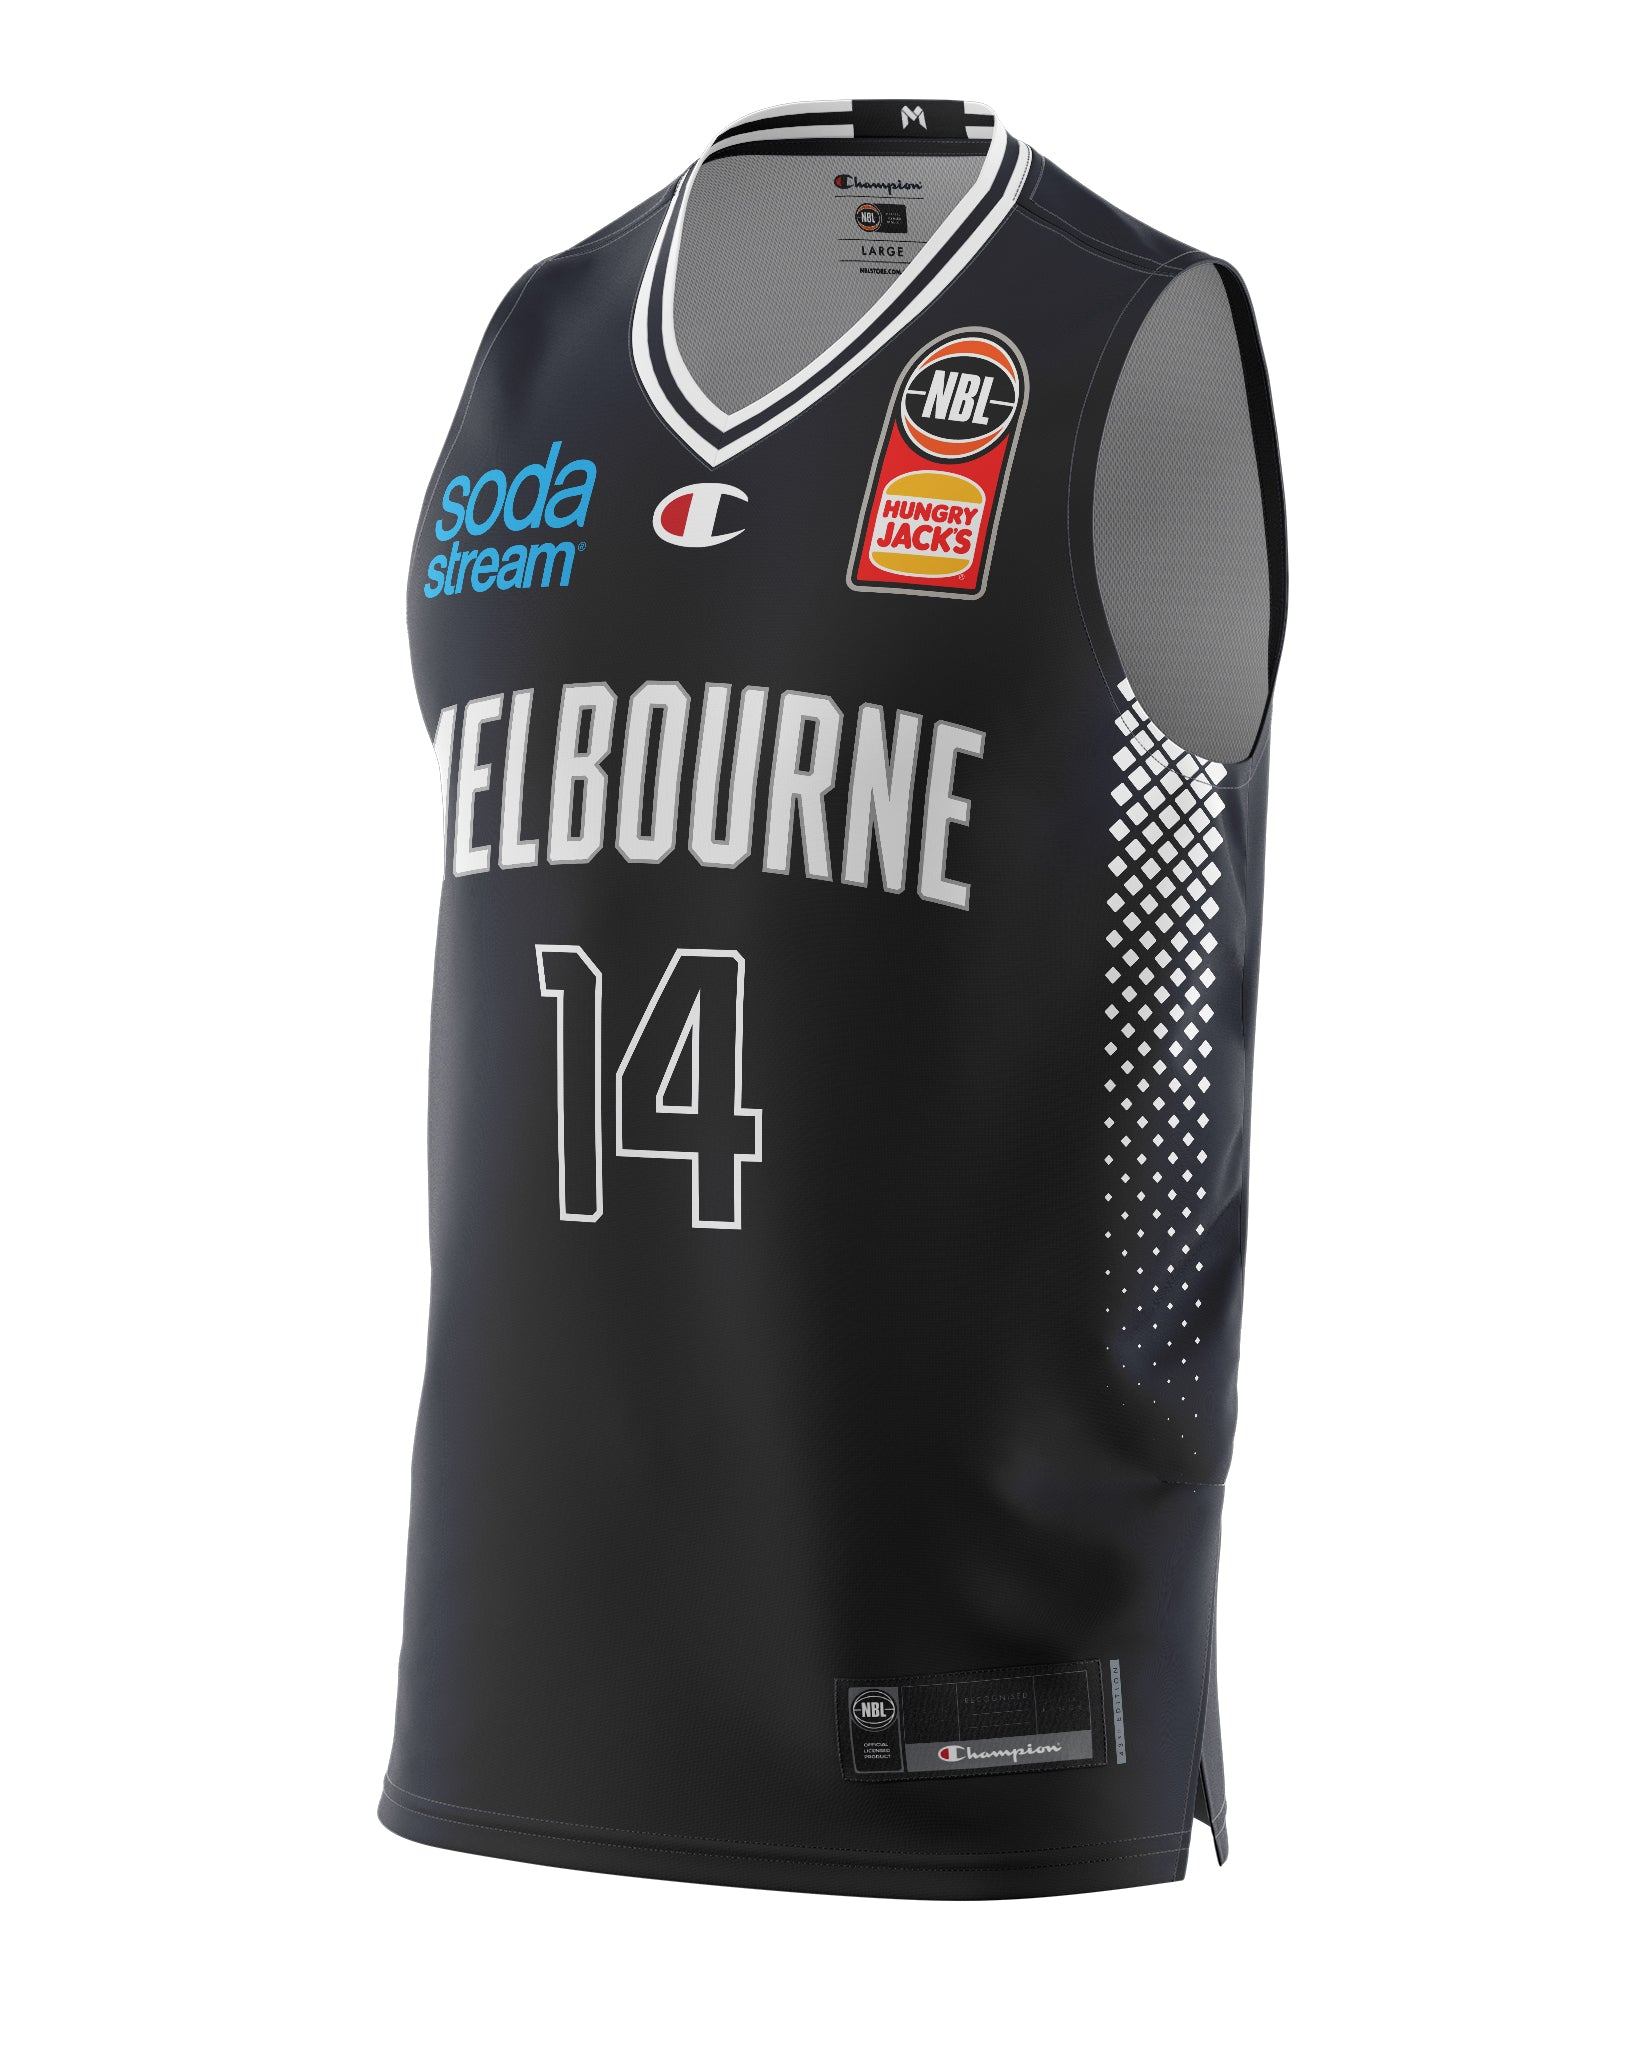 Melbourne United 20/21 Authentic Home Jersey - Jack White